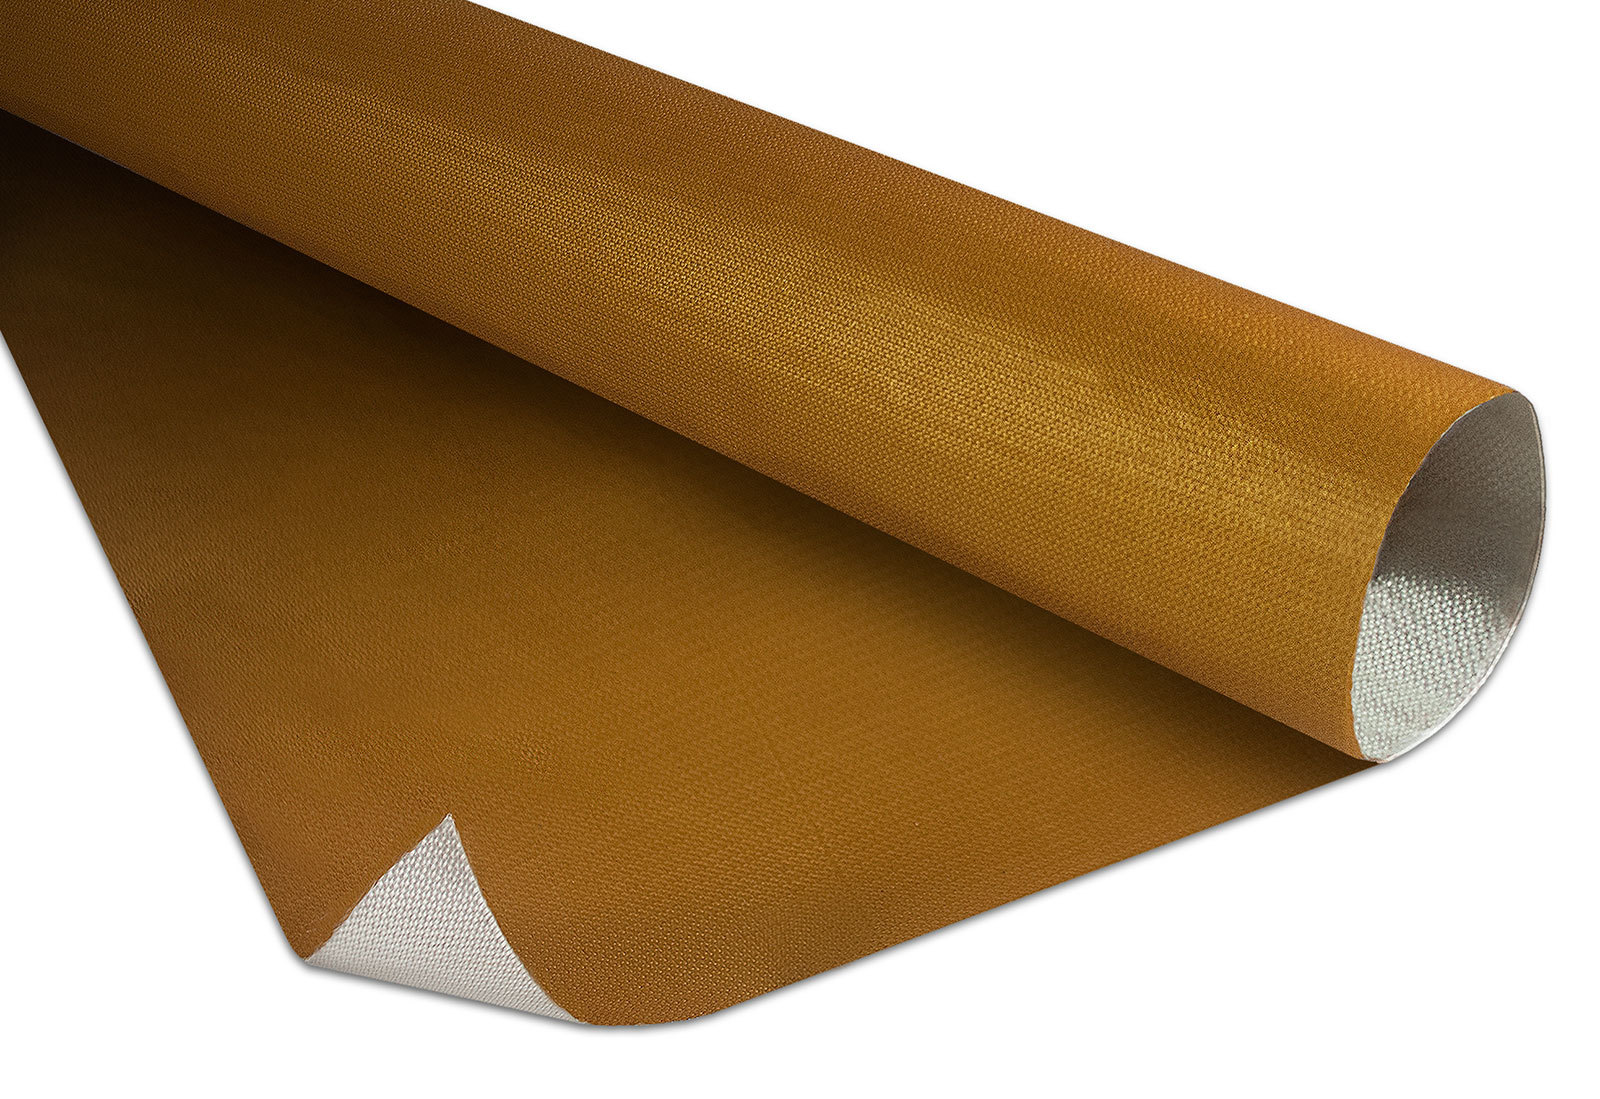 Thermo-tec Gold Heat Shield 24in x 24in